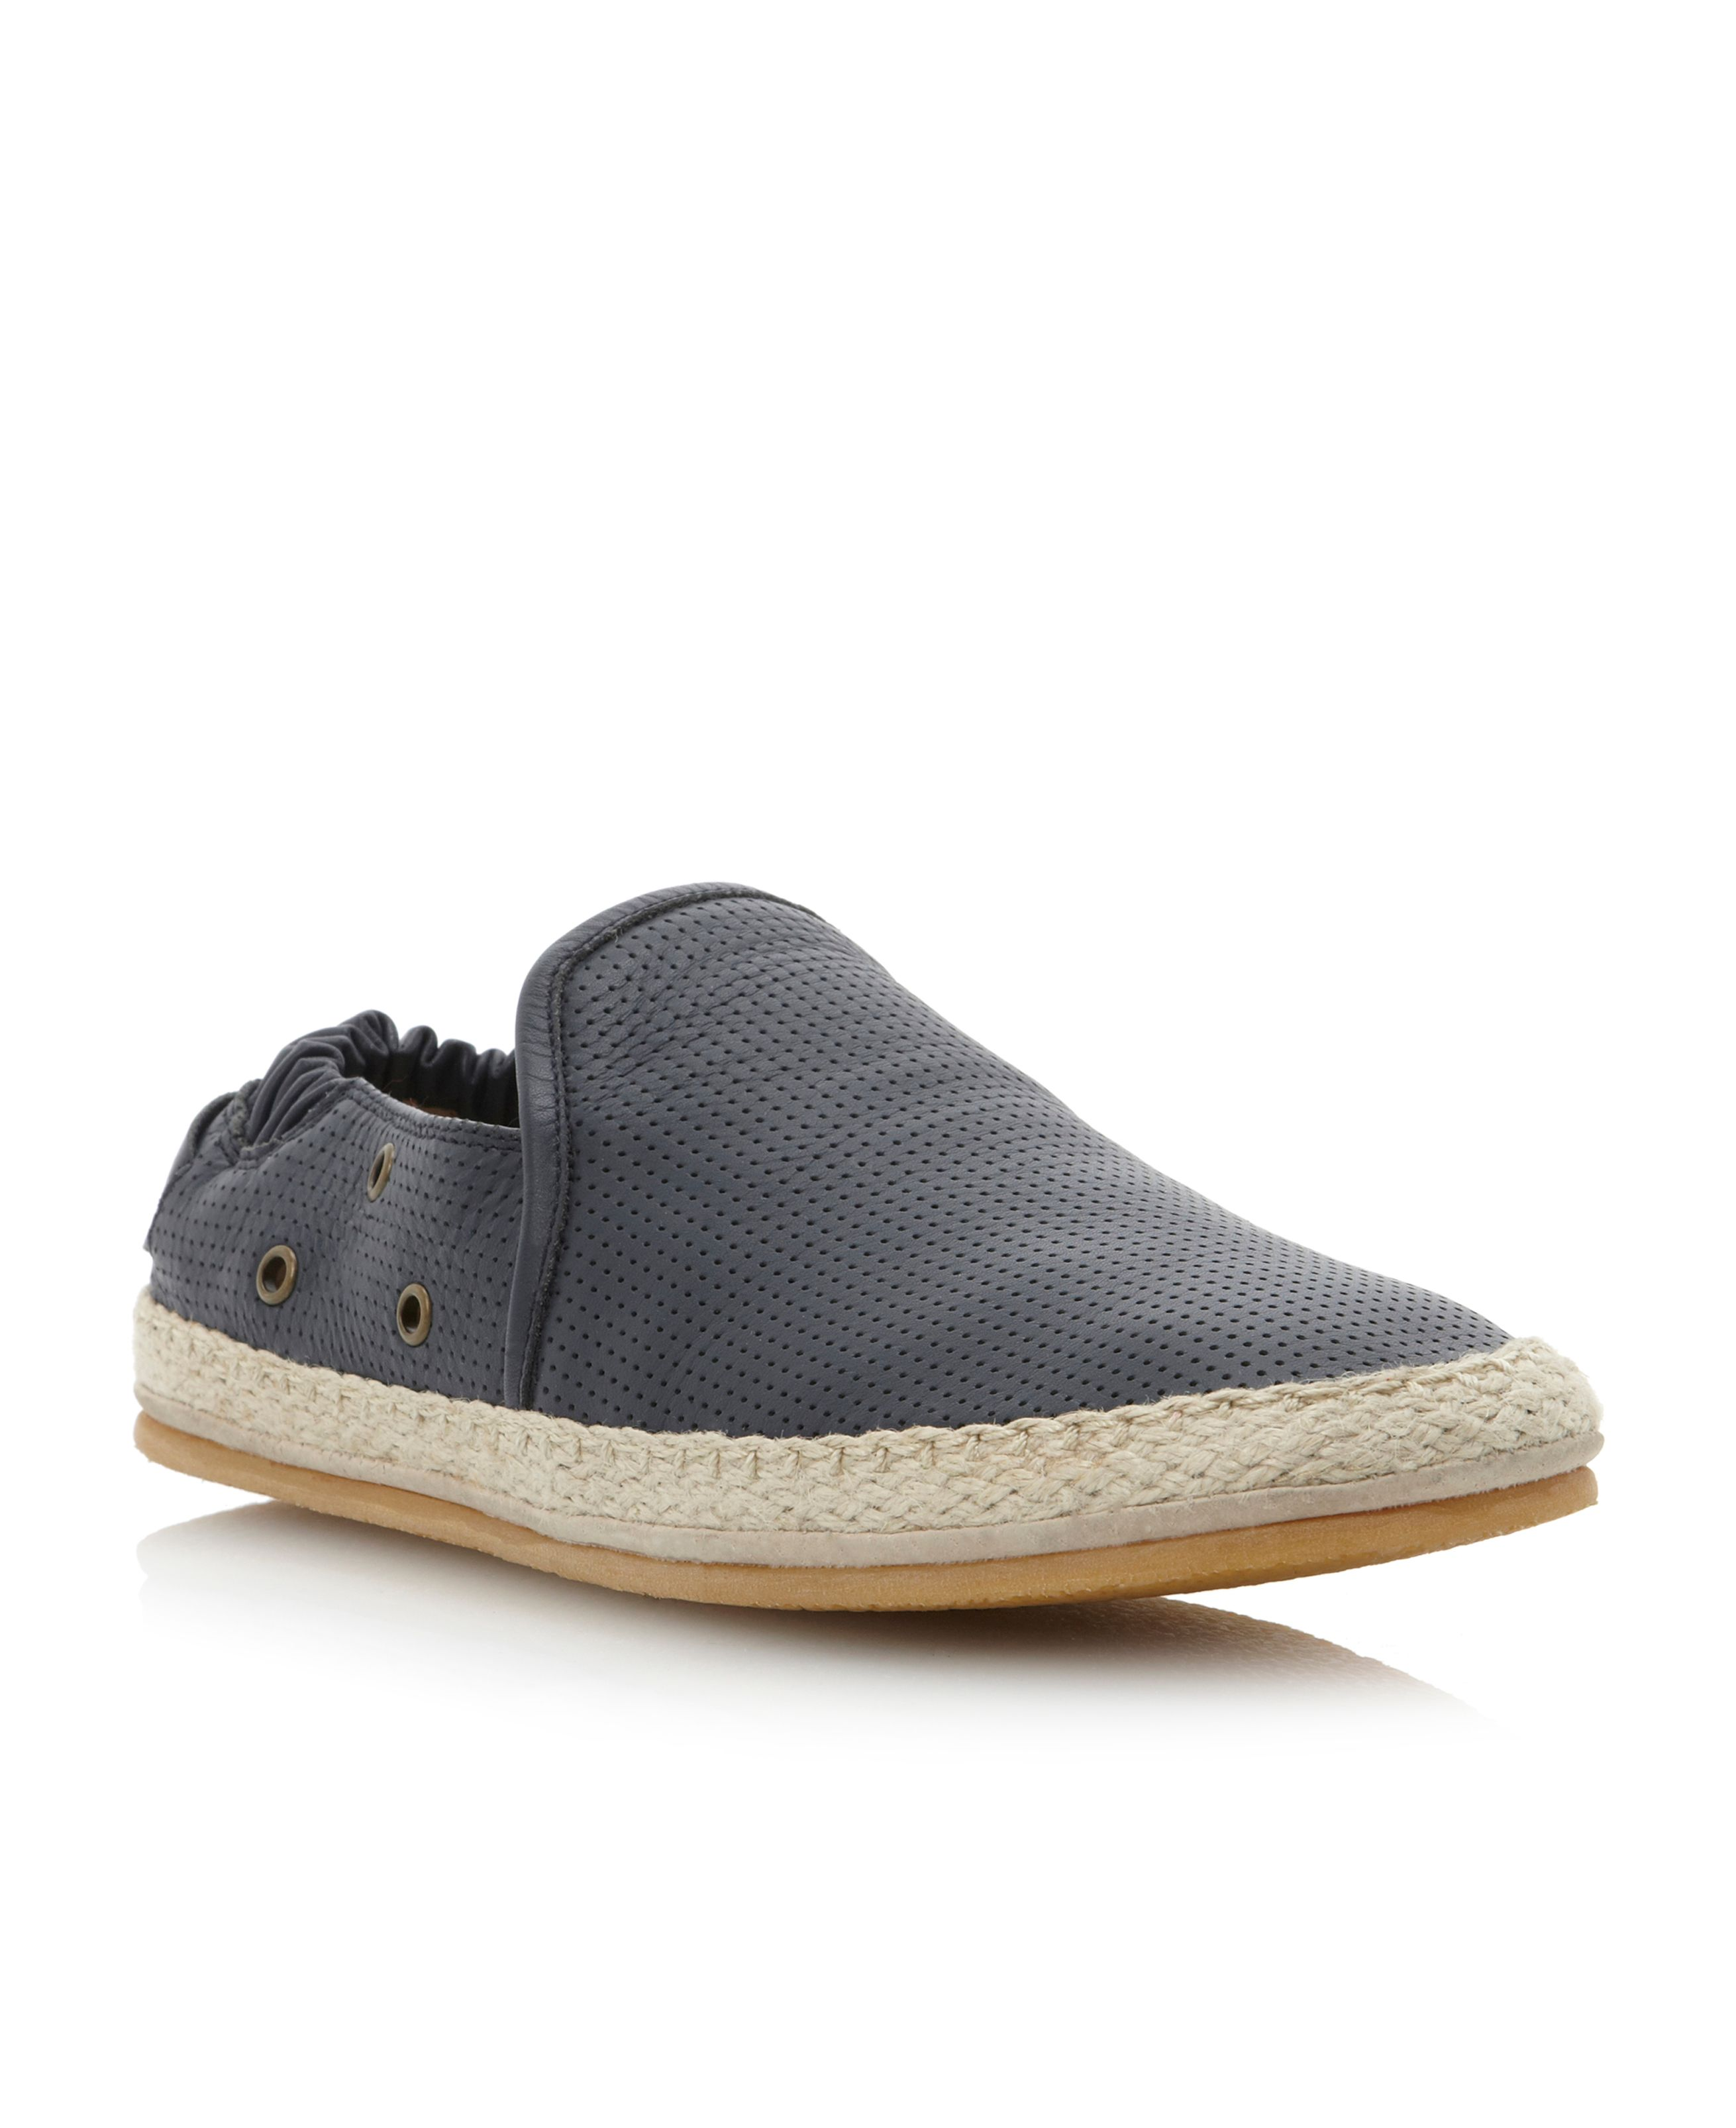 Falcon perforated espadrilles